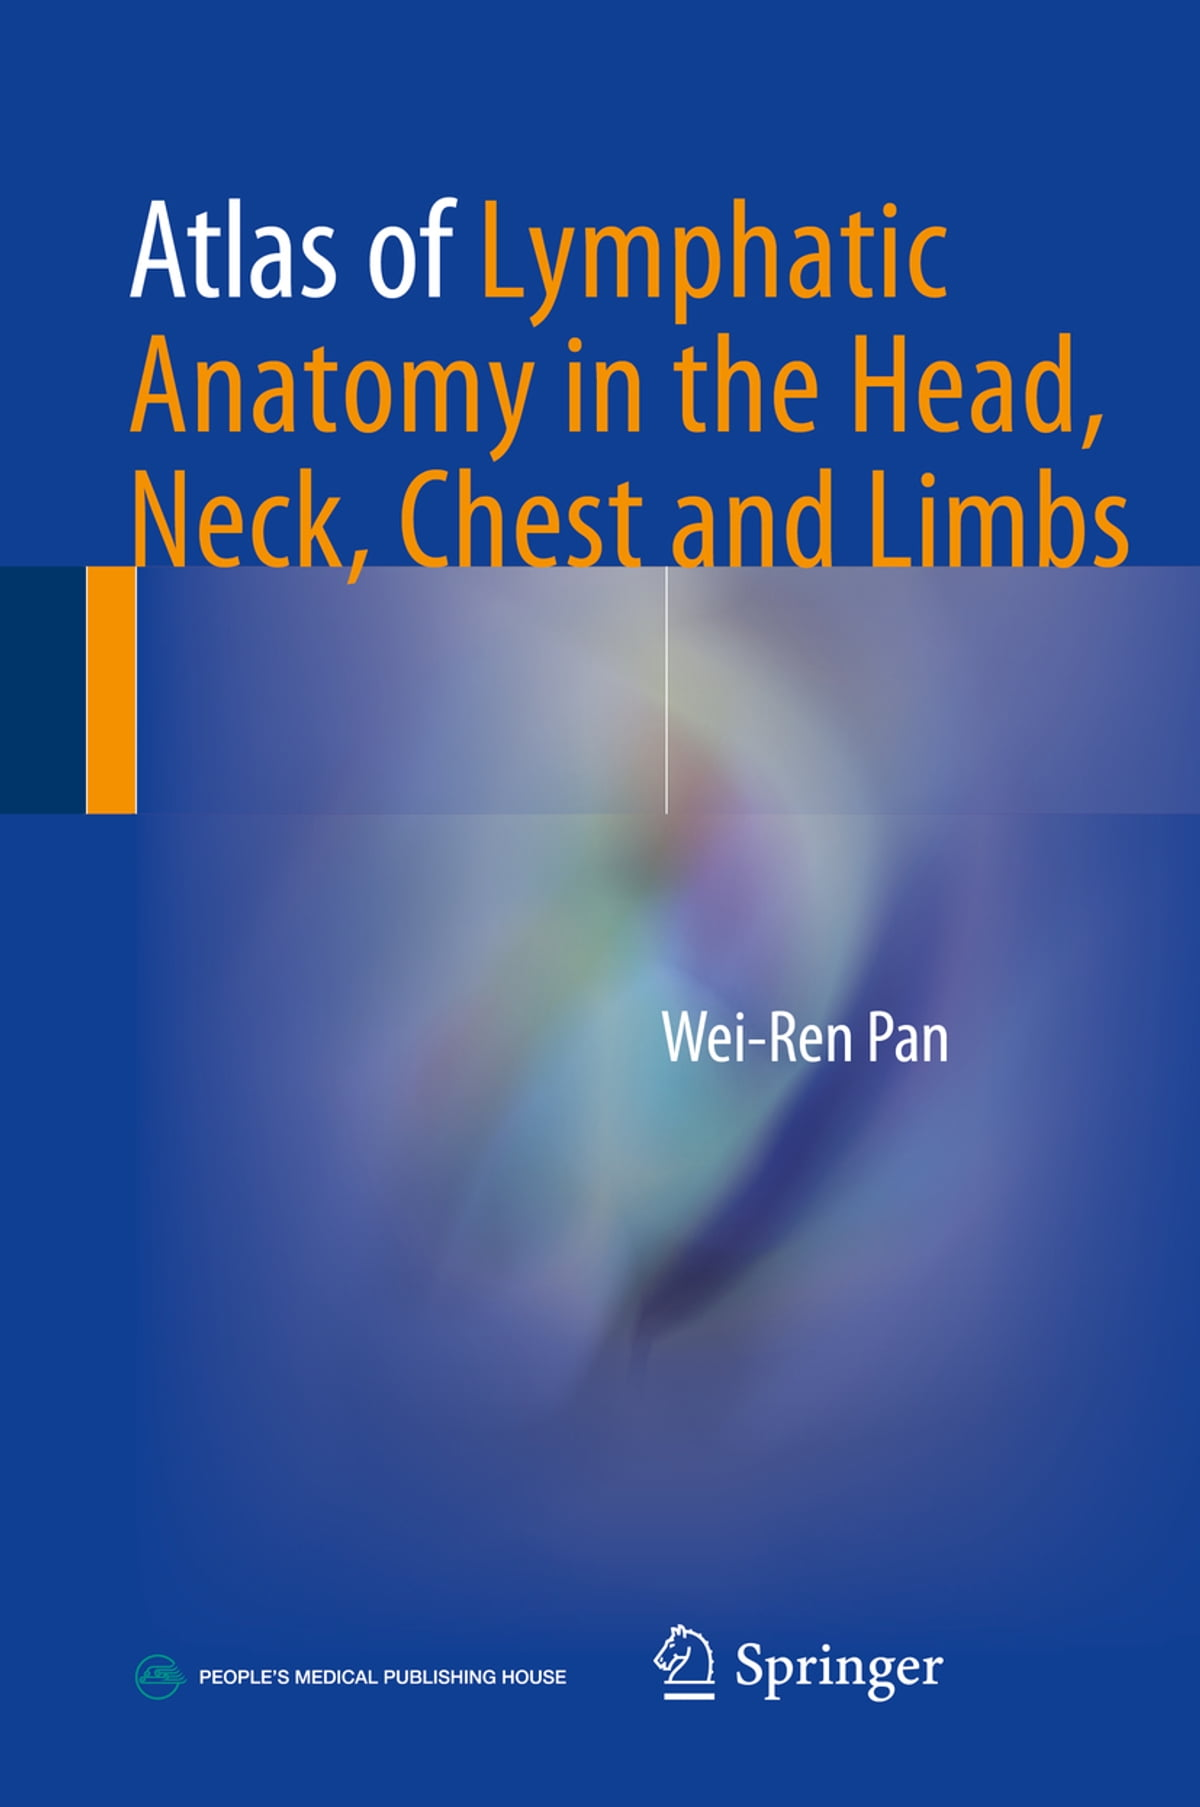 Atlas of Lymphatic Anatomy in the Head, Neck, Chest and Limbs eBook ...